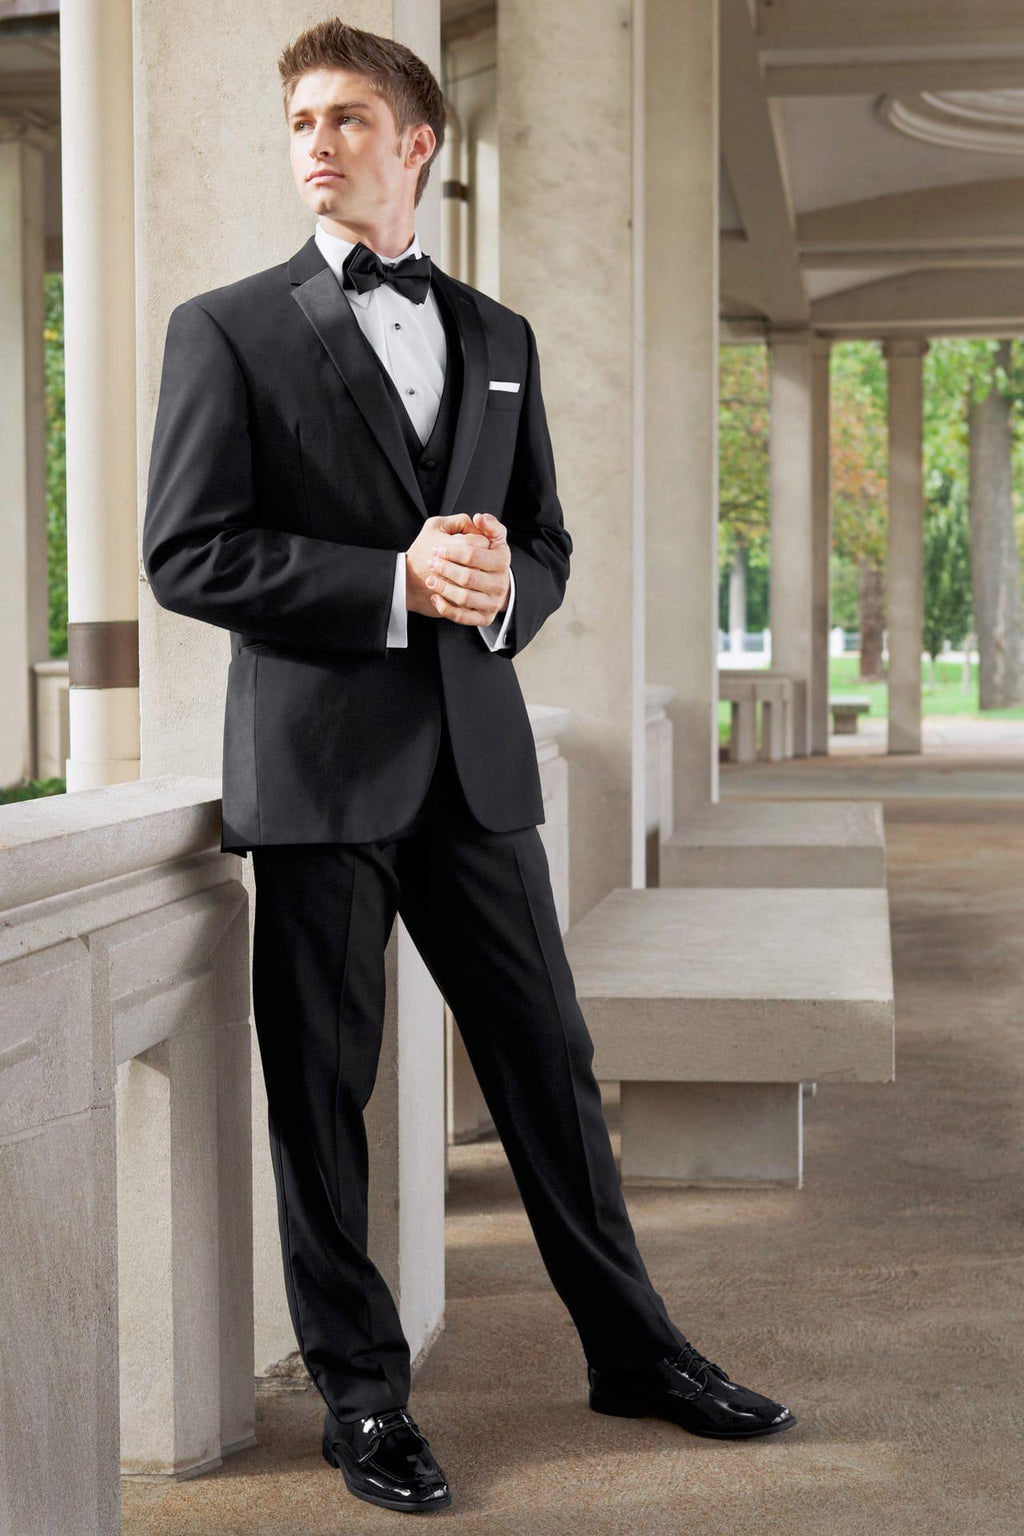 Black Tuxedo Rental for Wedding, Prom or Formal Occassion